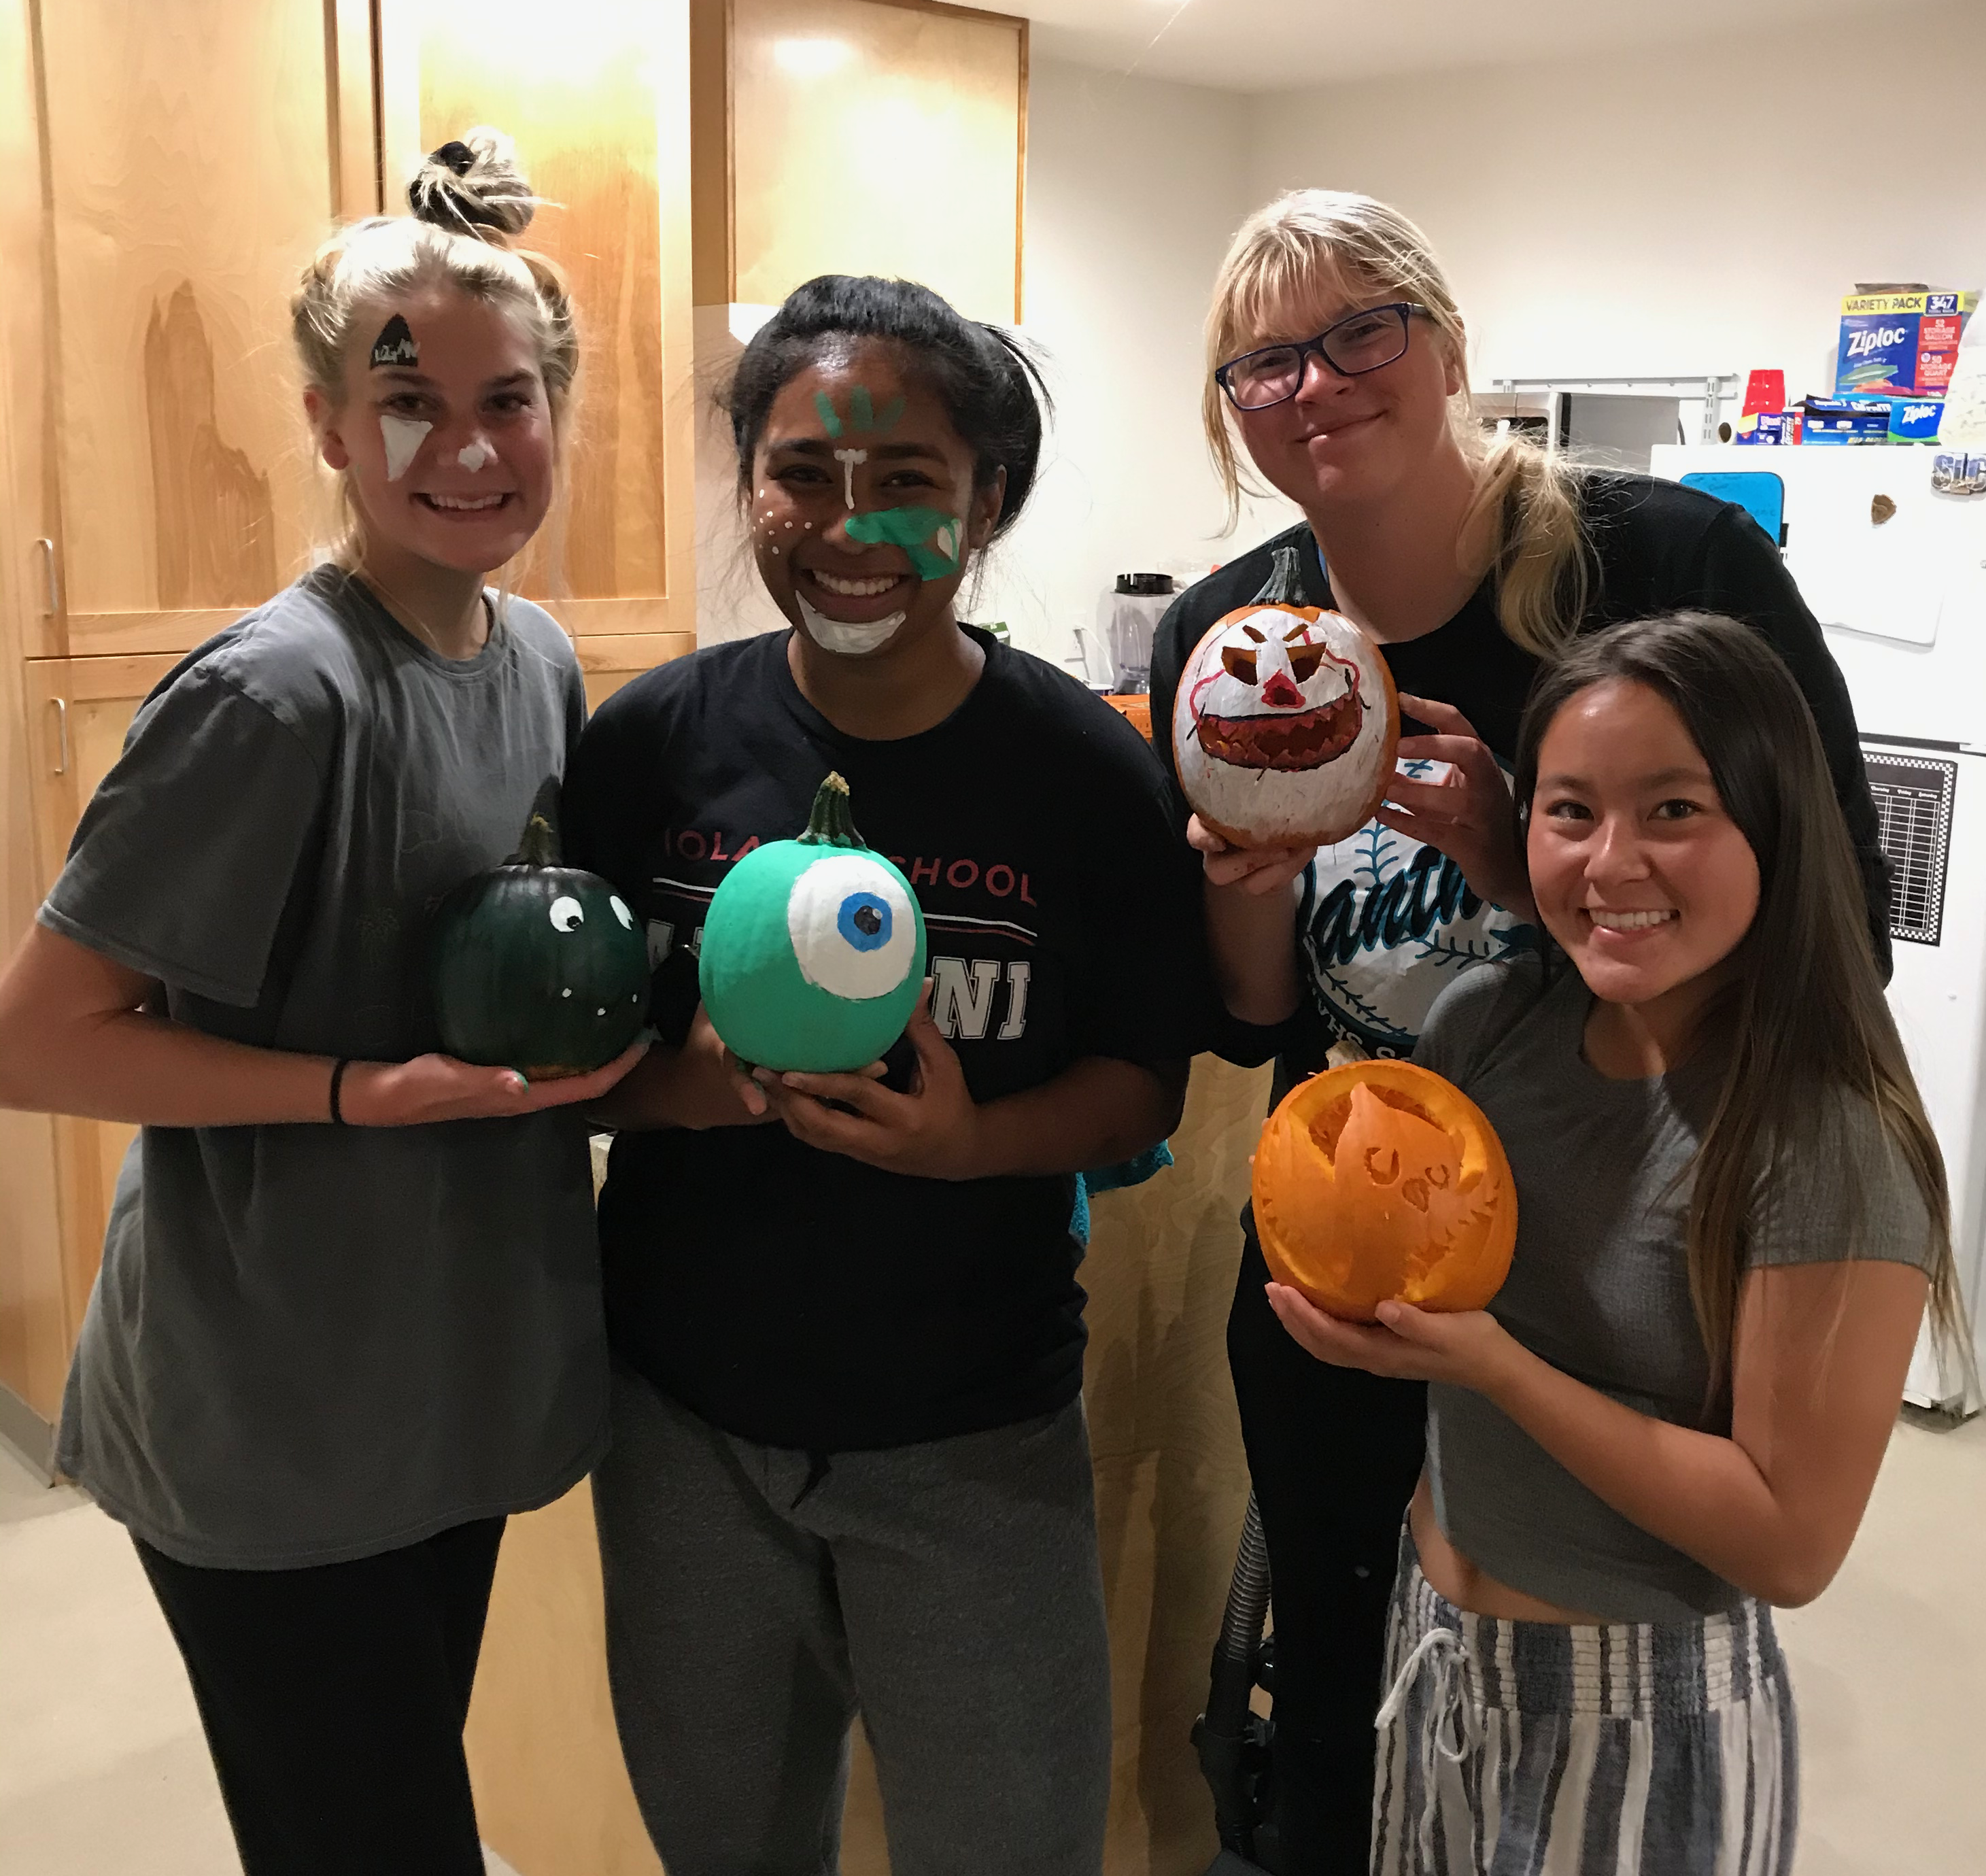 Four residents and four decorated pumpkins